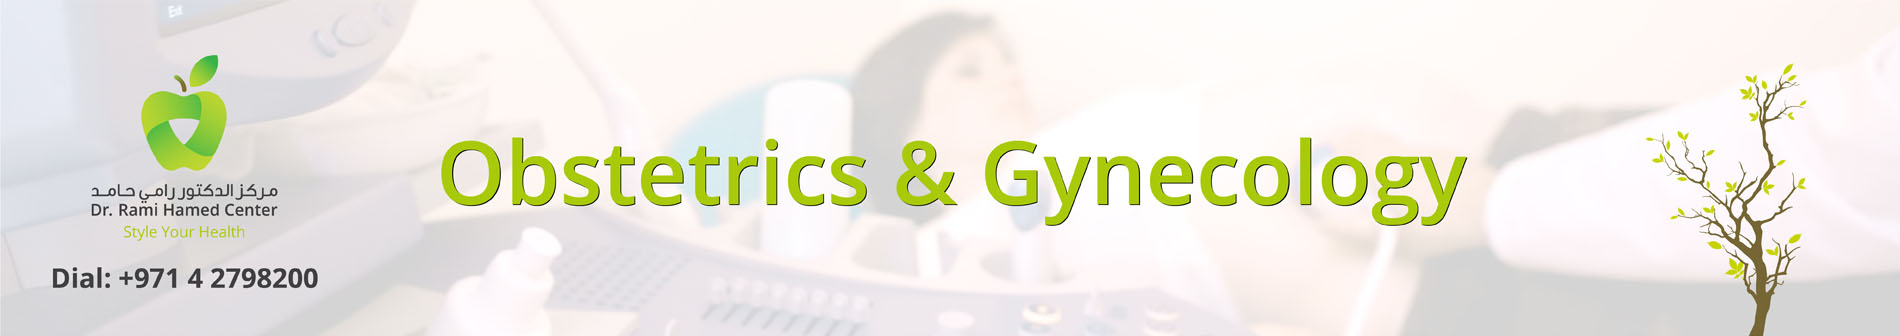 Dubai Obstetrics and Gynecology Clinic